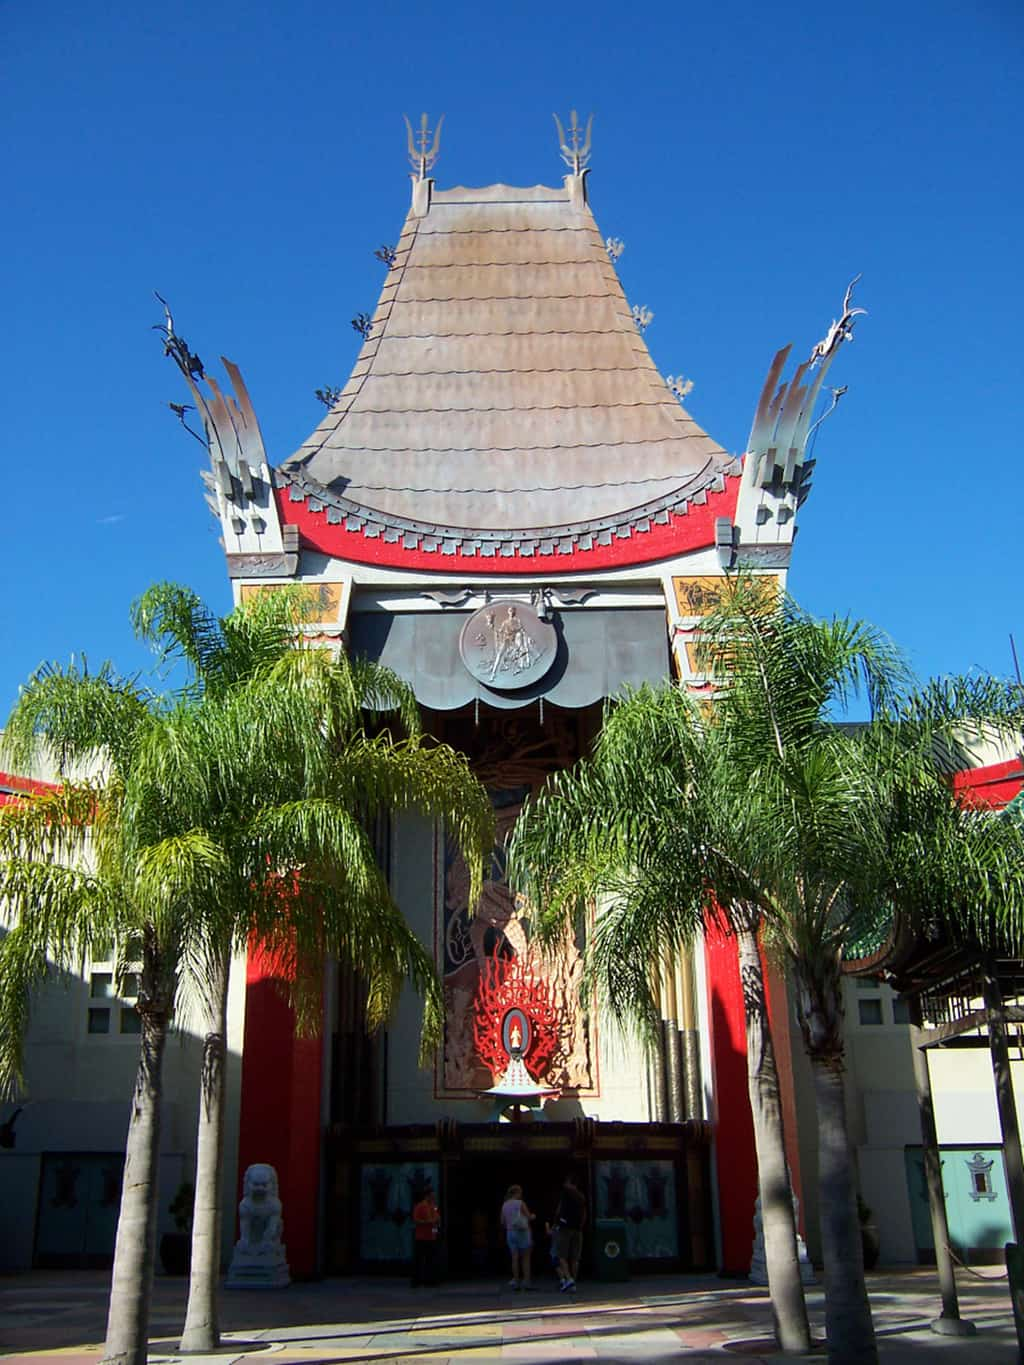 The view we SHOULD see when we enter Disney Hollywood Studios!